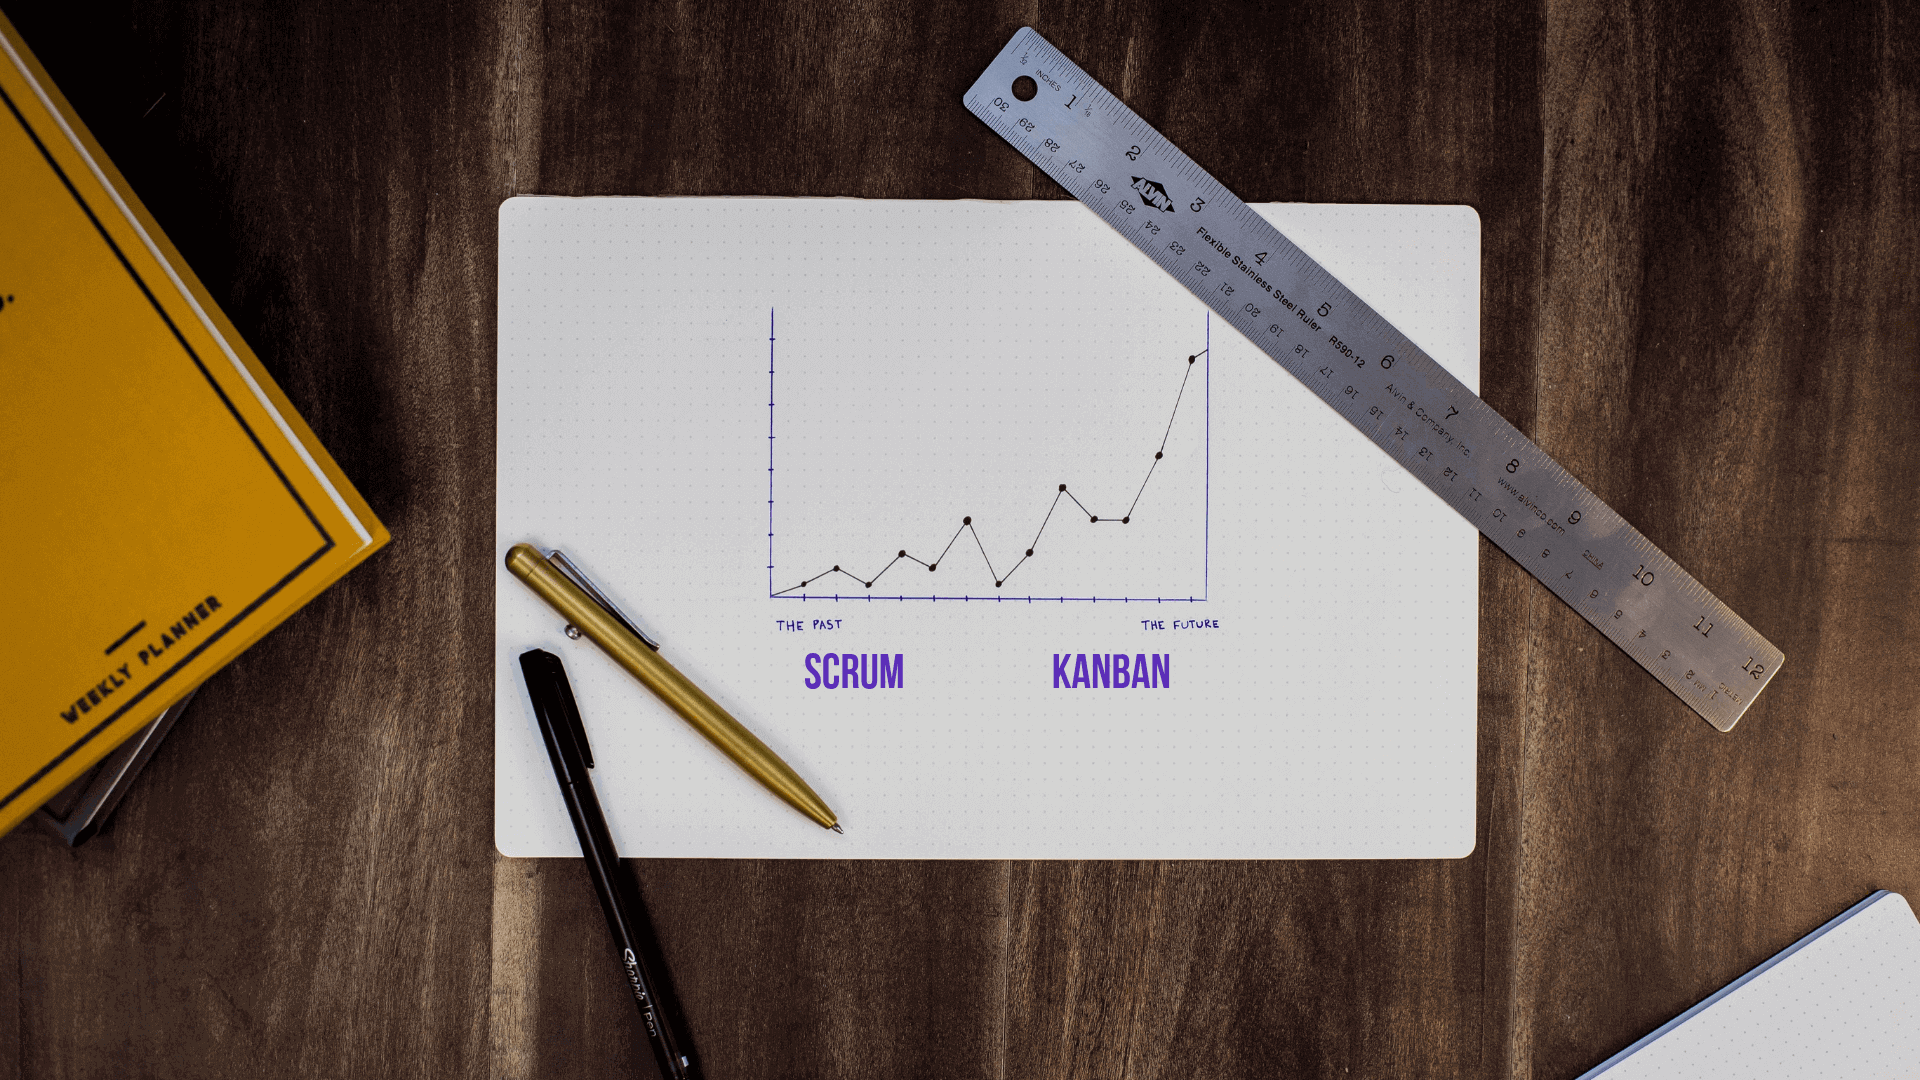 Scrum compares to Kanban as Sprints compare to Marathons. One is optimized for the short-term and the other for the long-term.